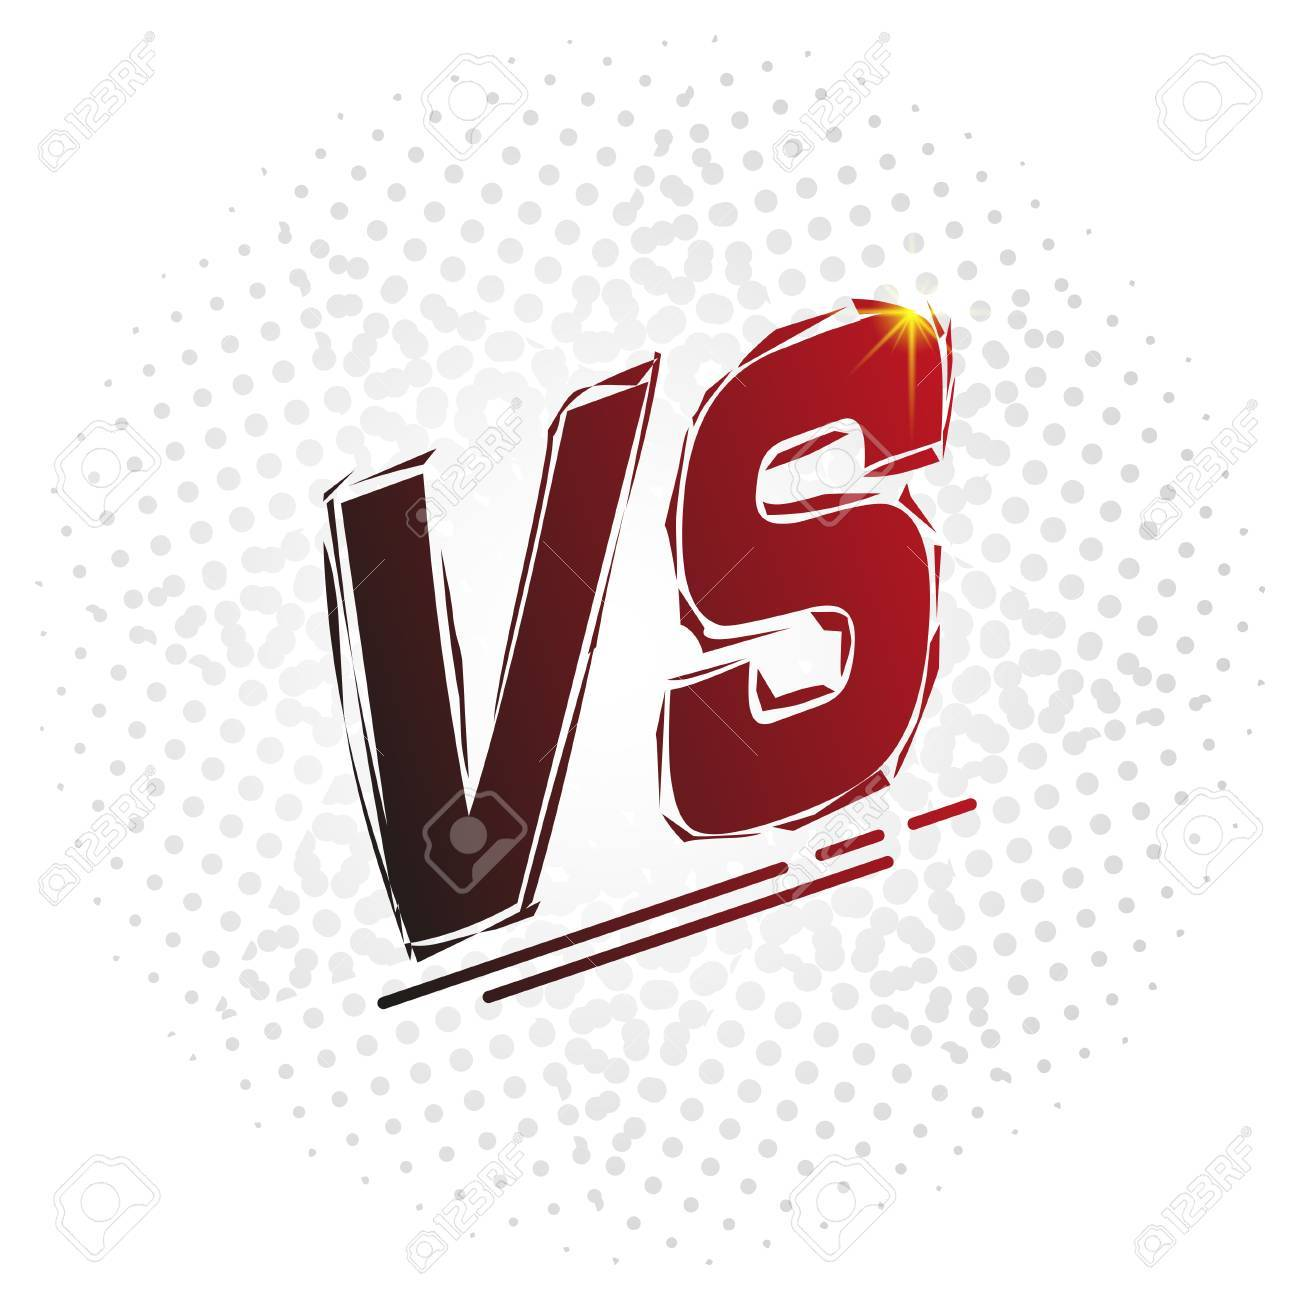 versus screen vs letters competition vs match game martial